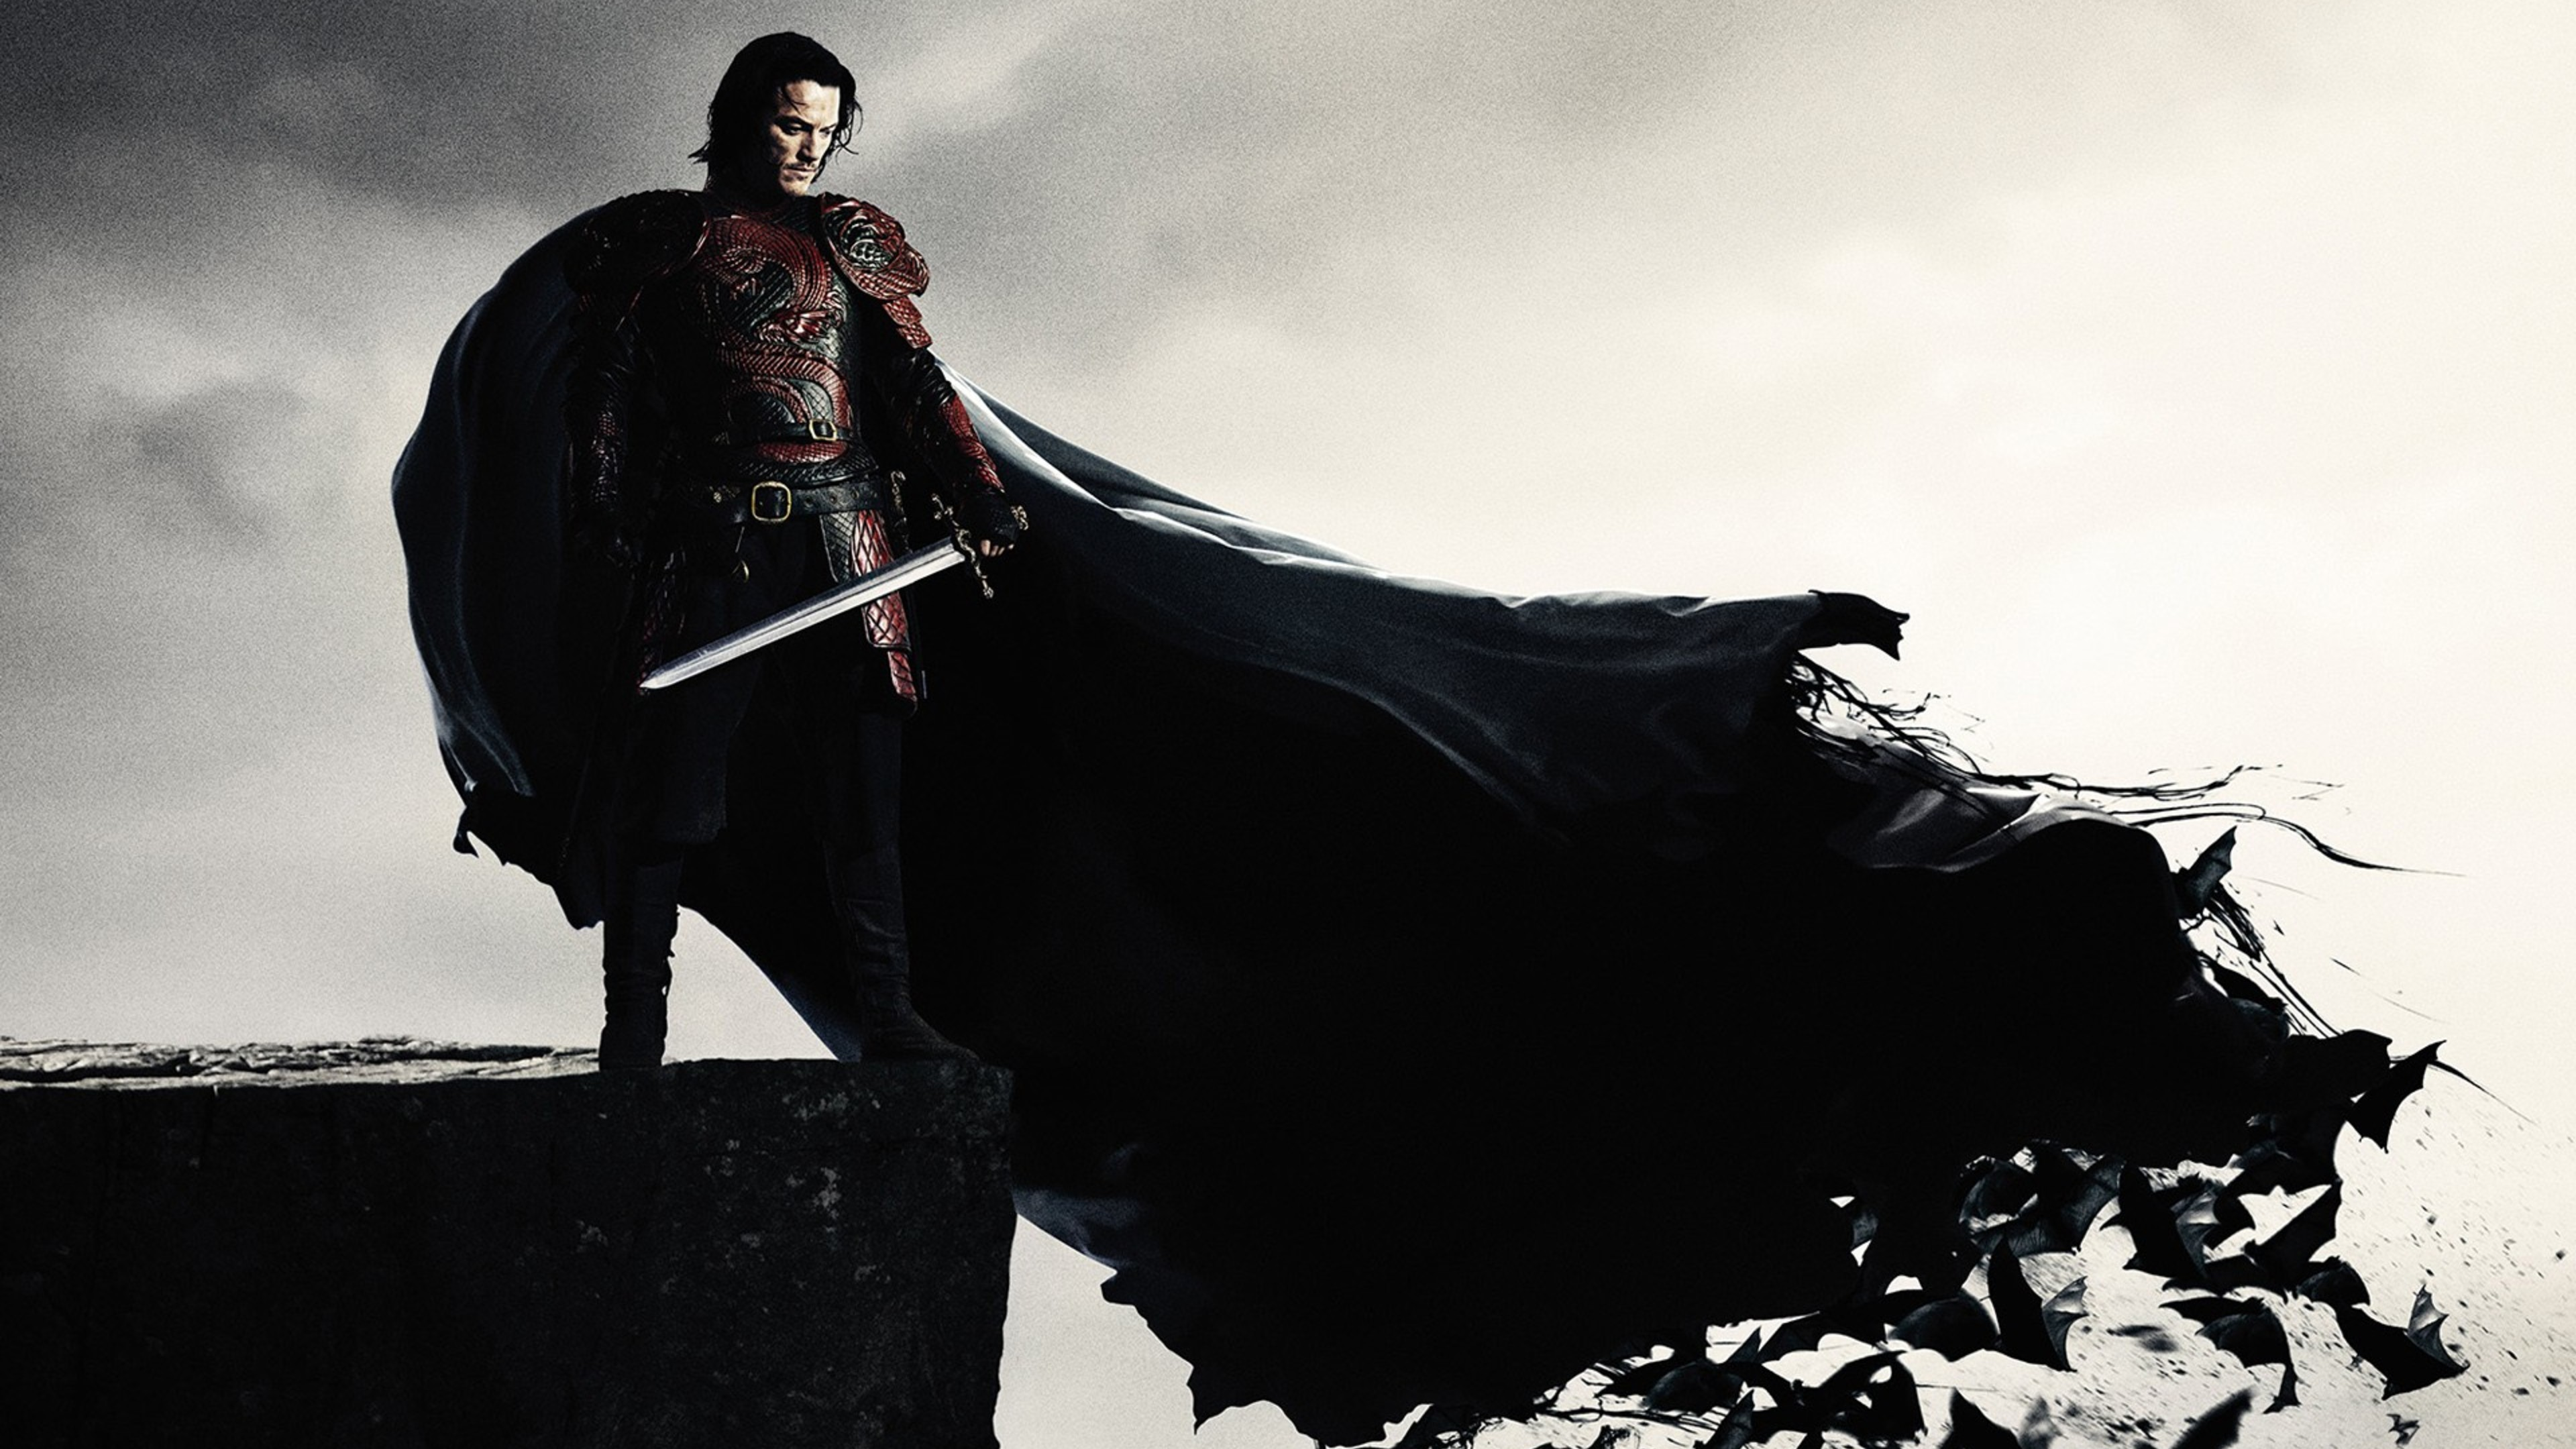 Dracula Untold Retina Movie Wallpaper: Dracula Untold 2016, HD Movies, 4k Wallpapers, Images